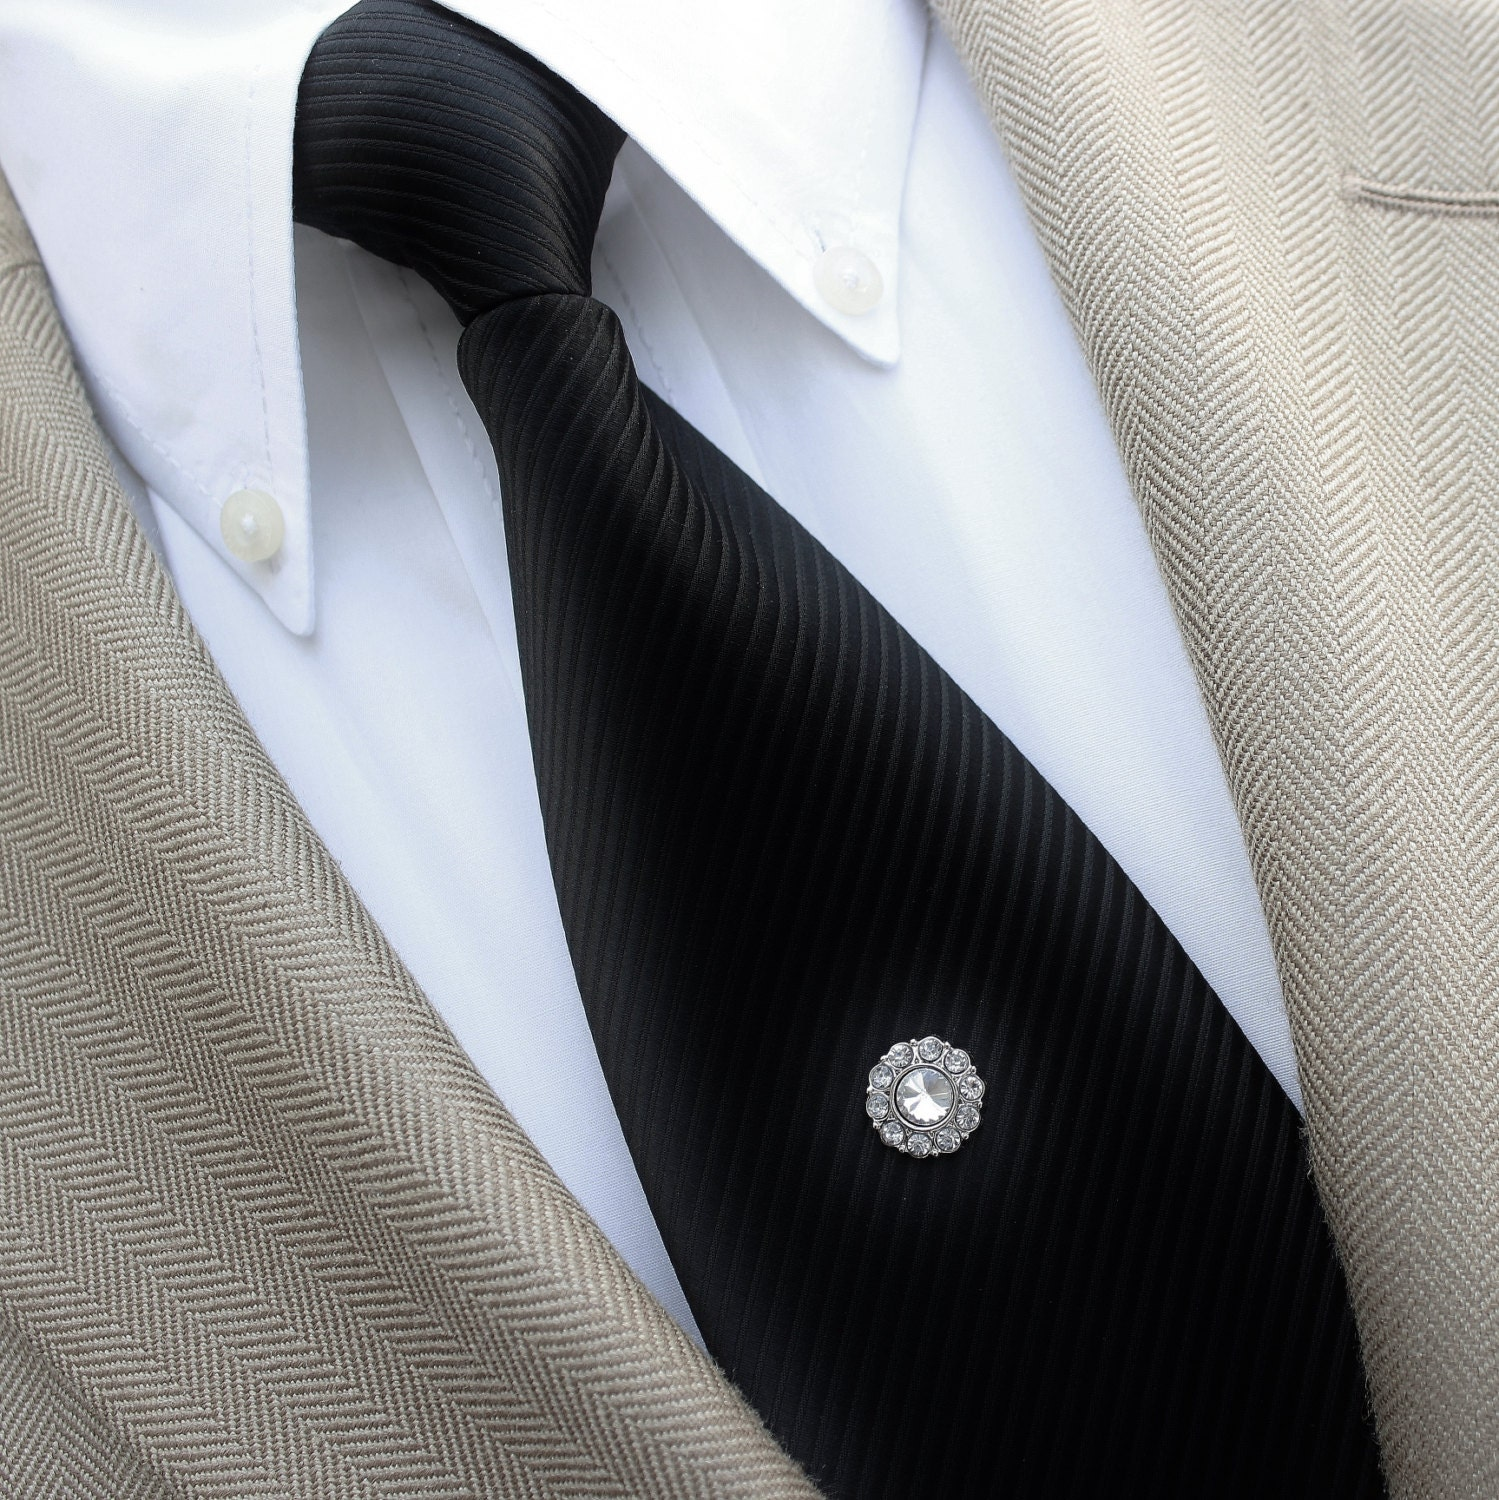 Black Diamond Tie Tack Pins, Mens Gifts, Gifts for Him ...